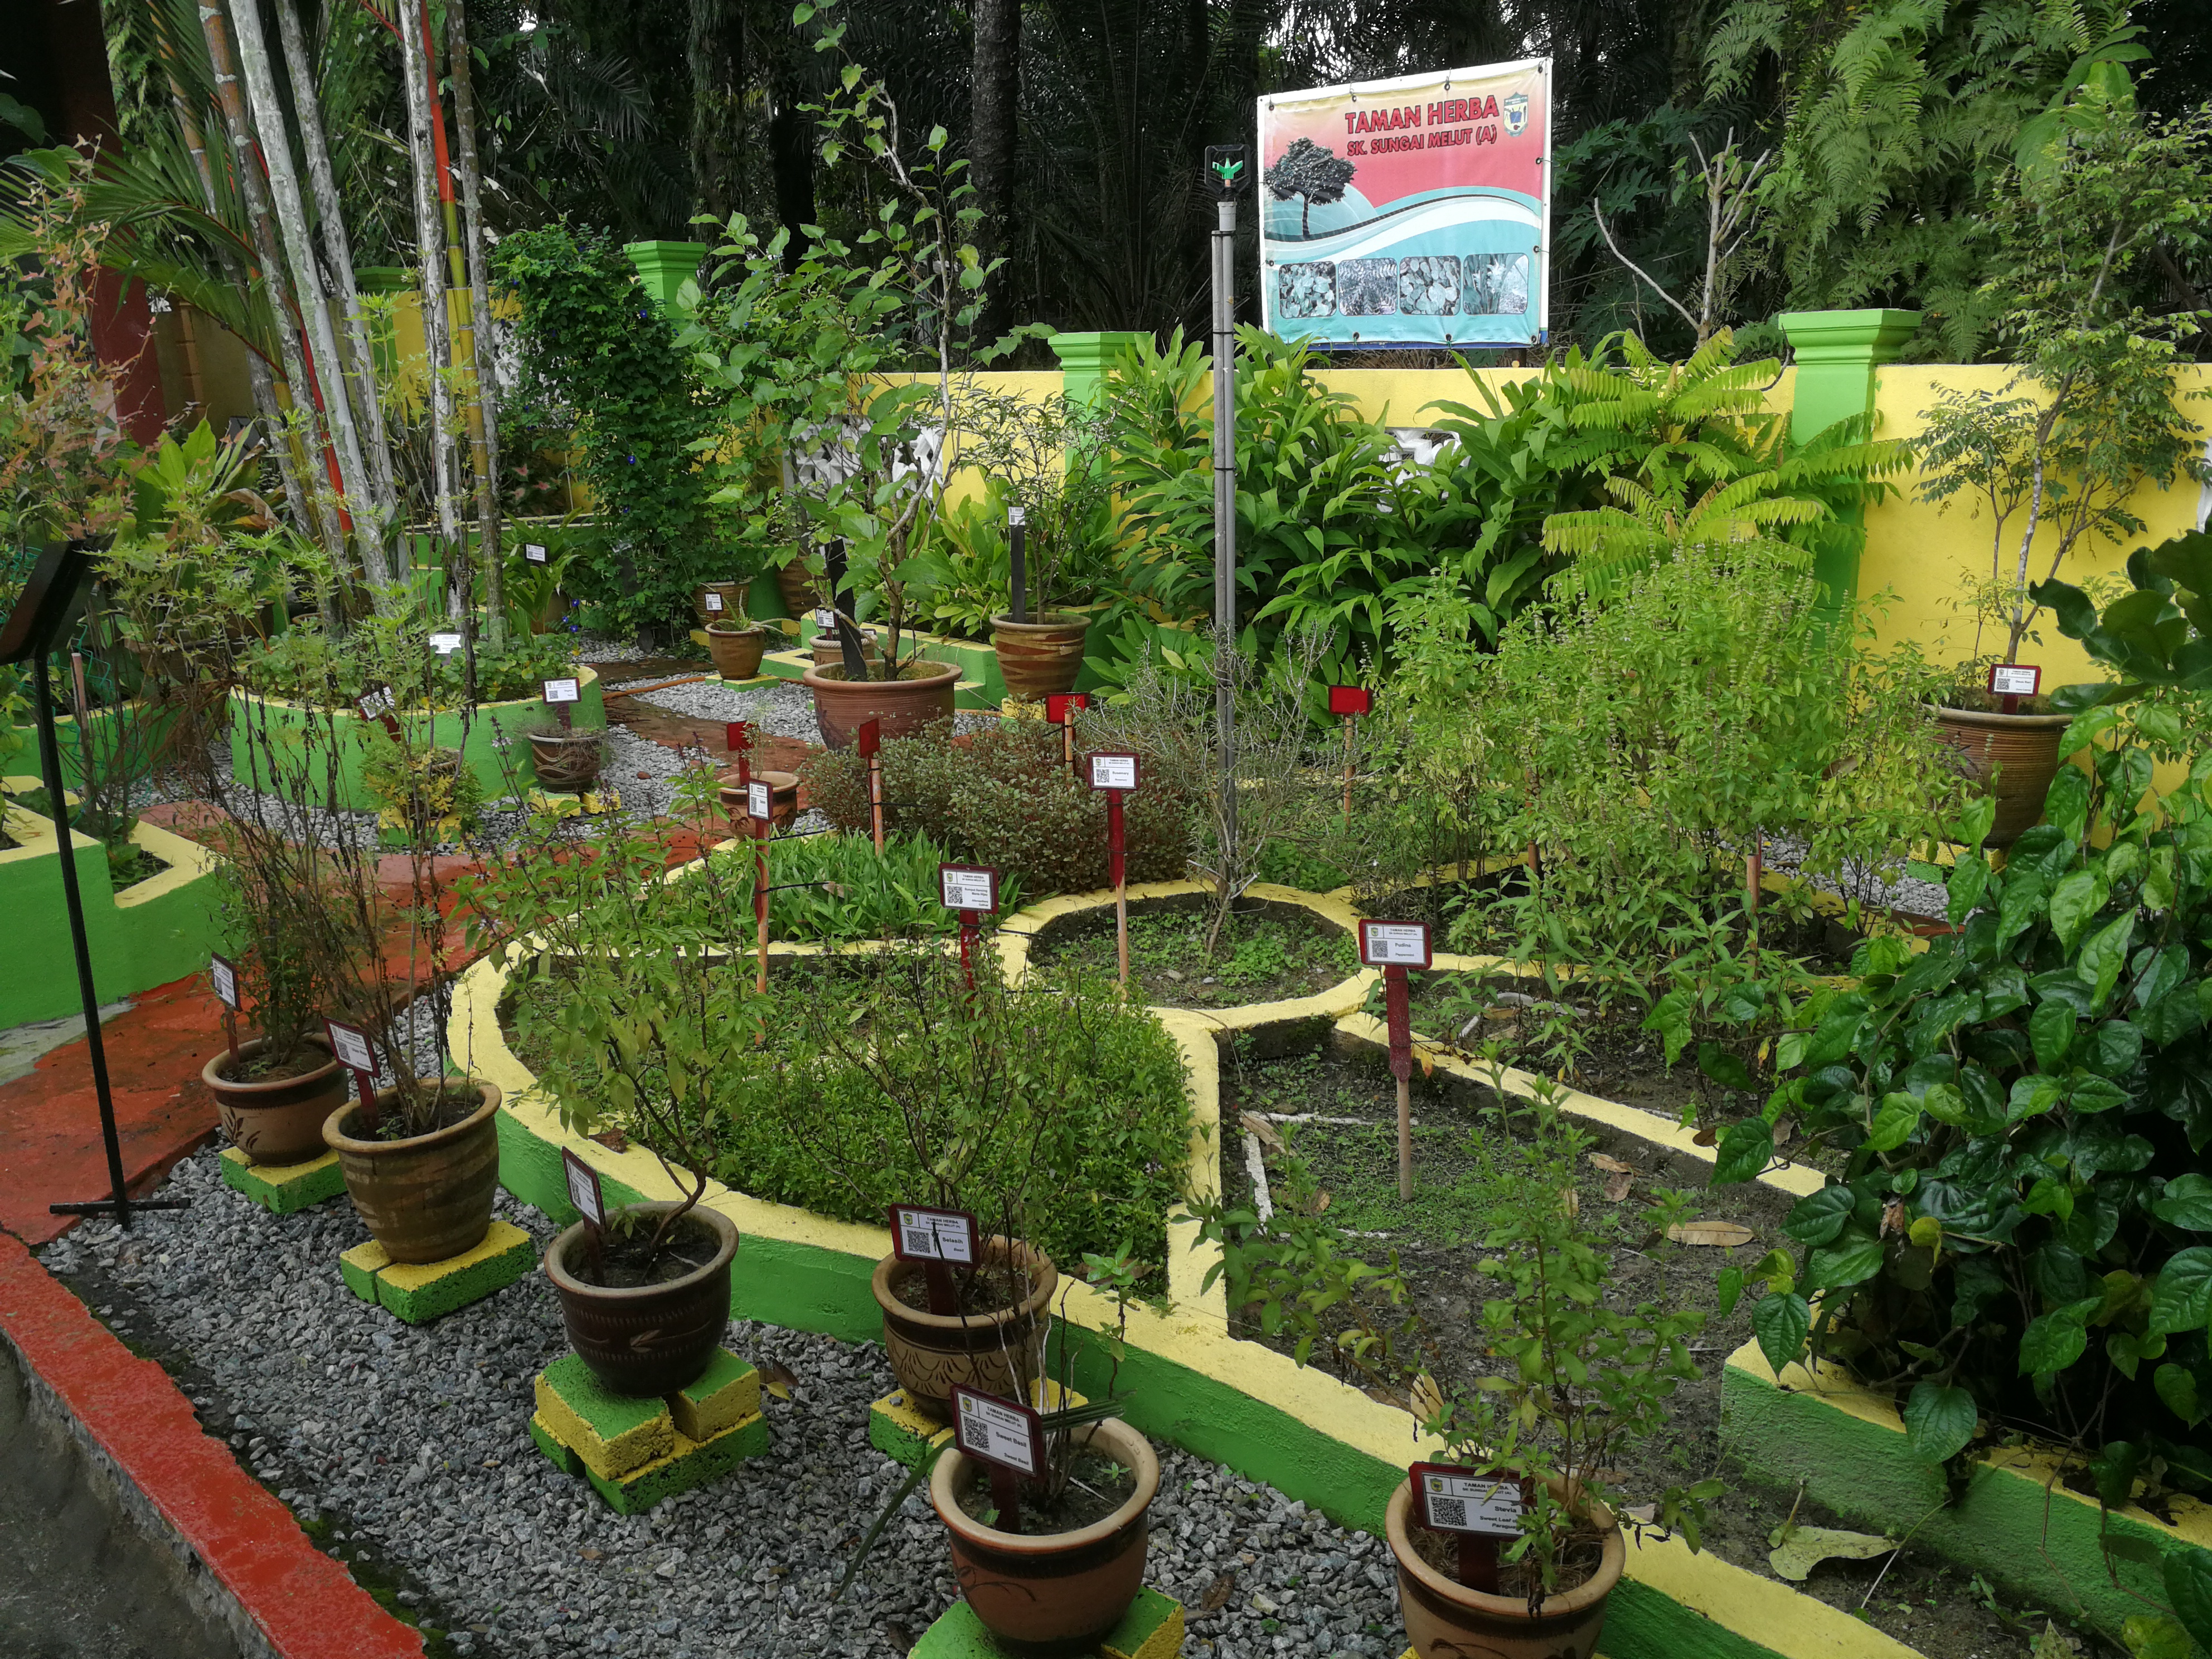 Nobody dares to touch the herbs, because the teacher who built it is very protective of them.